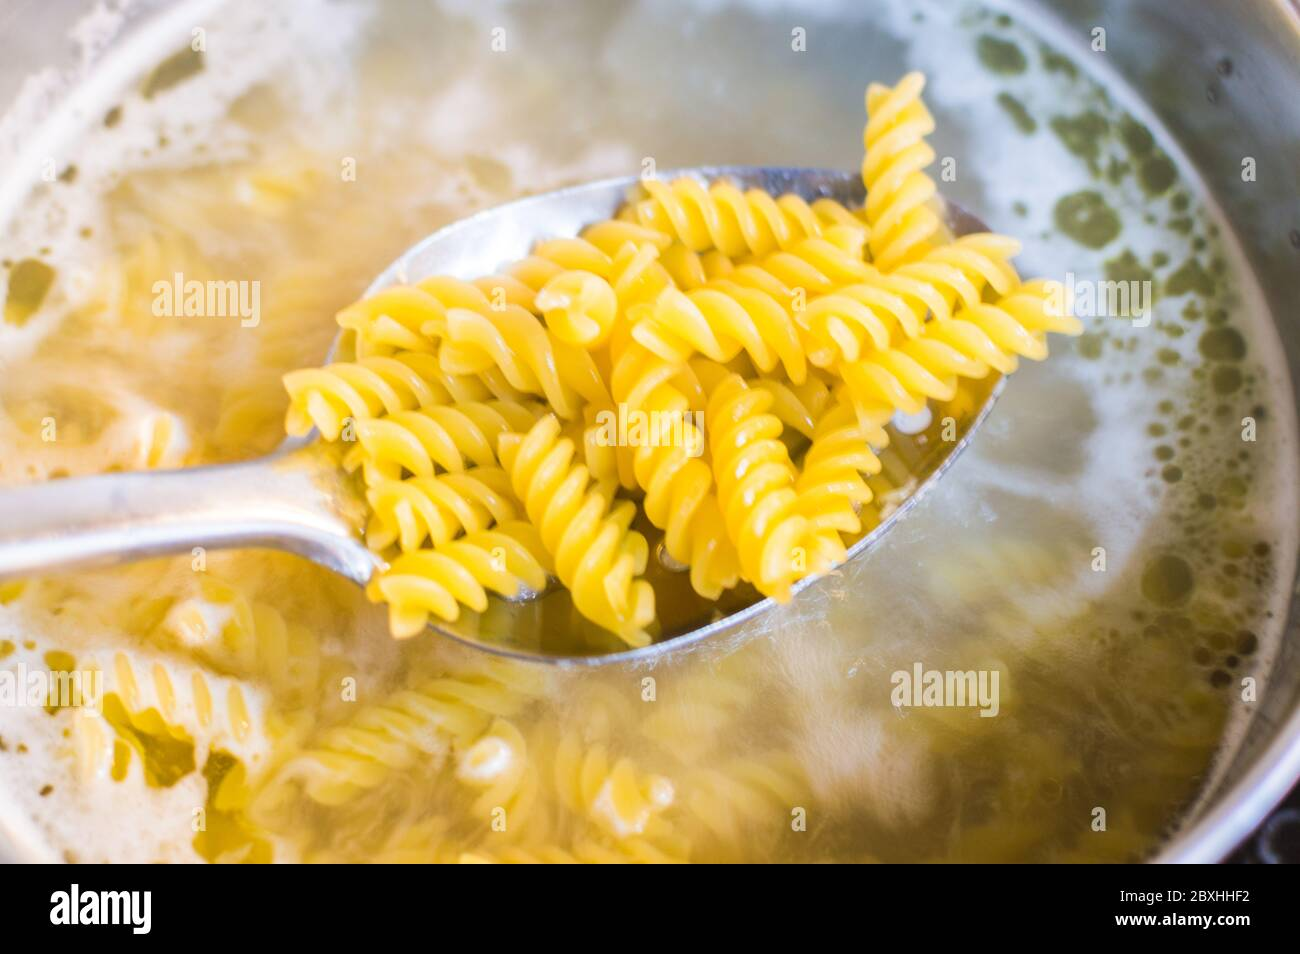 pasta-being-cooked-in-a-pan-with-boiler-water-and-spatula-checking-for-pasta-2BXHHF2.jpg